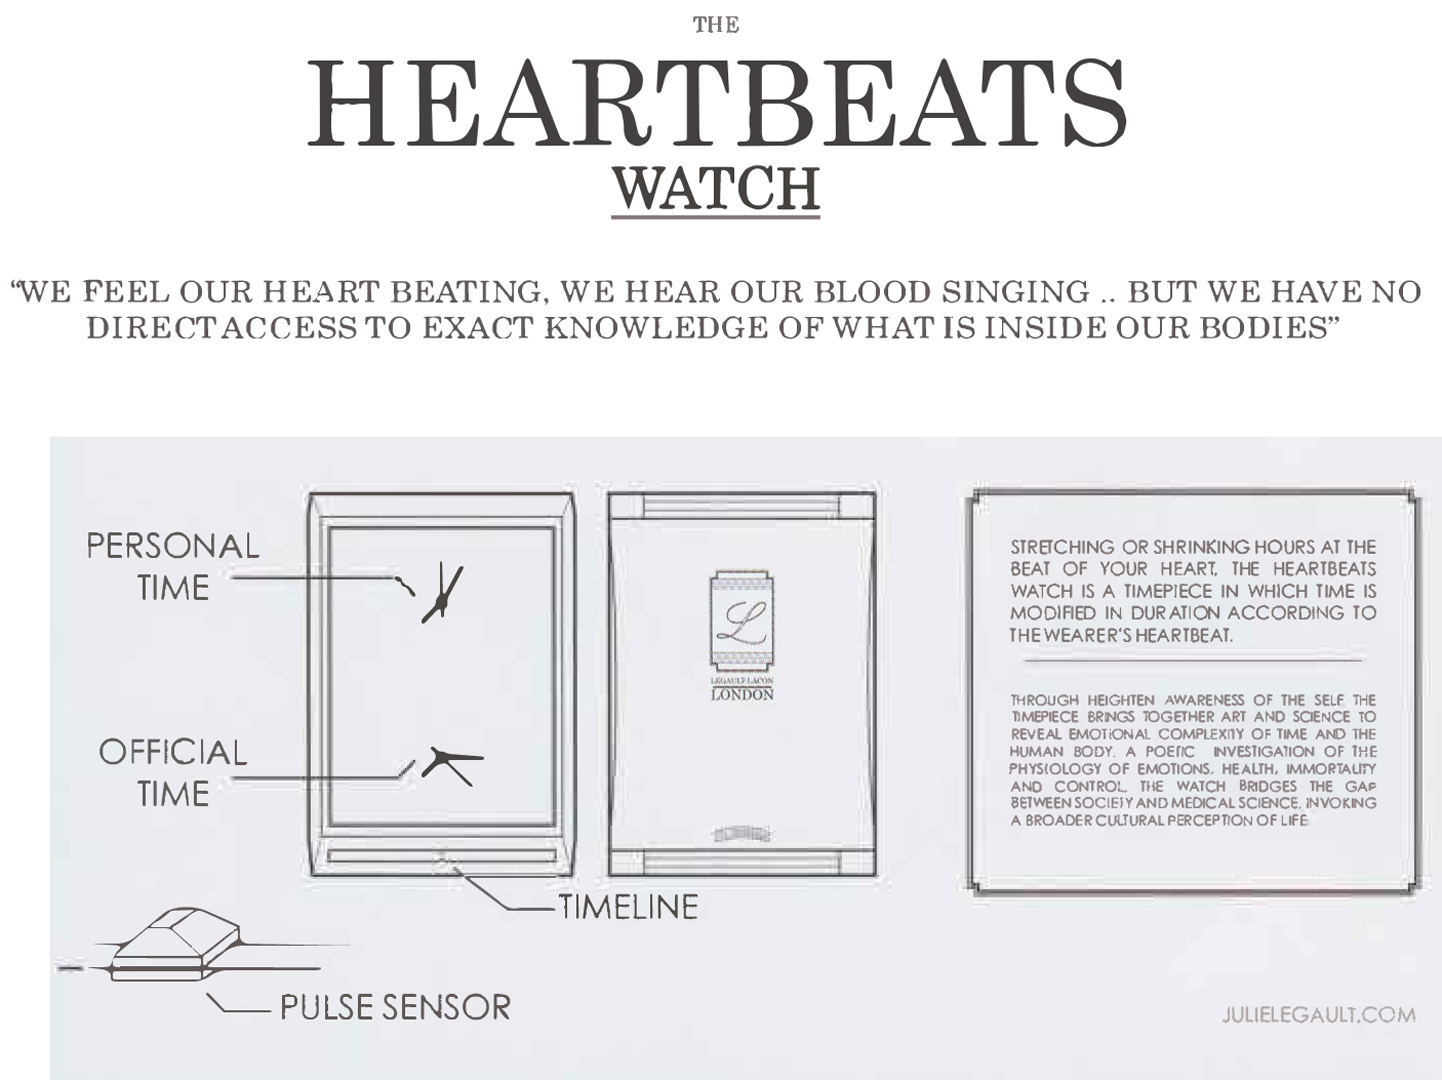 ©2011, Julie Legault, The HeartBeats Watch